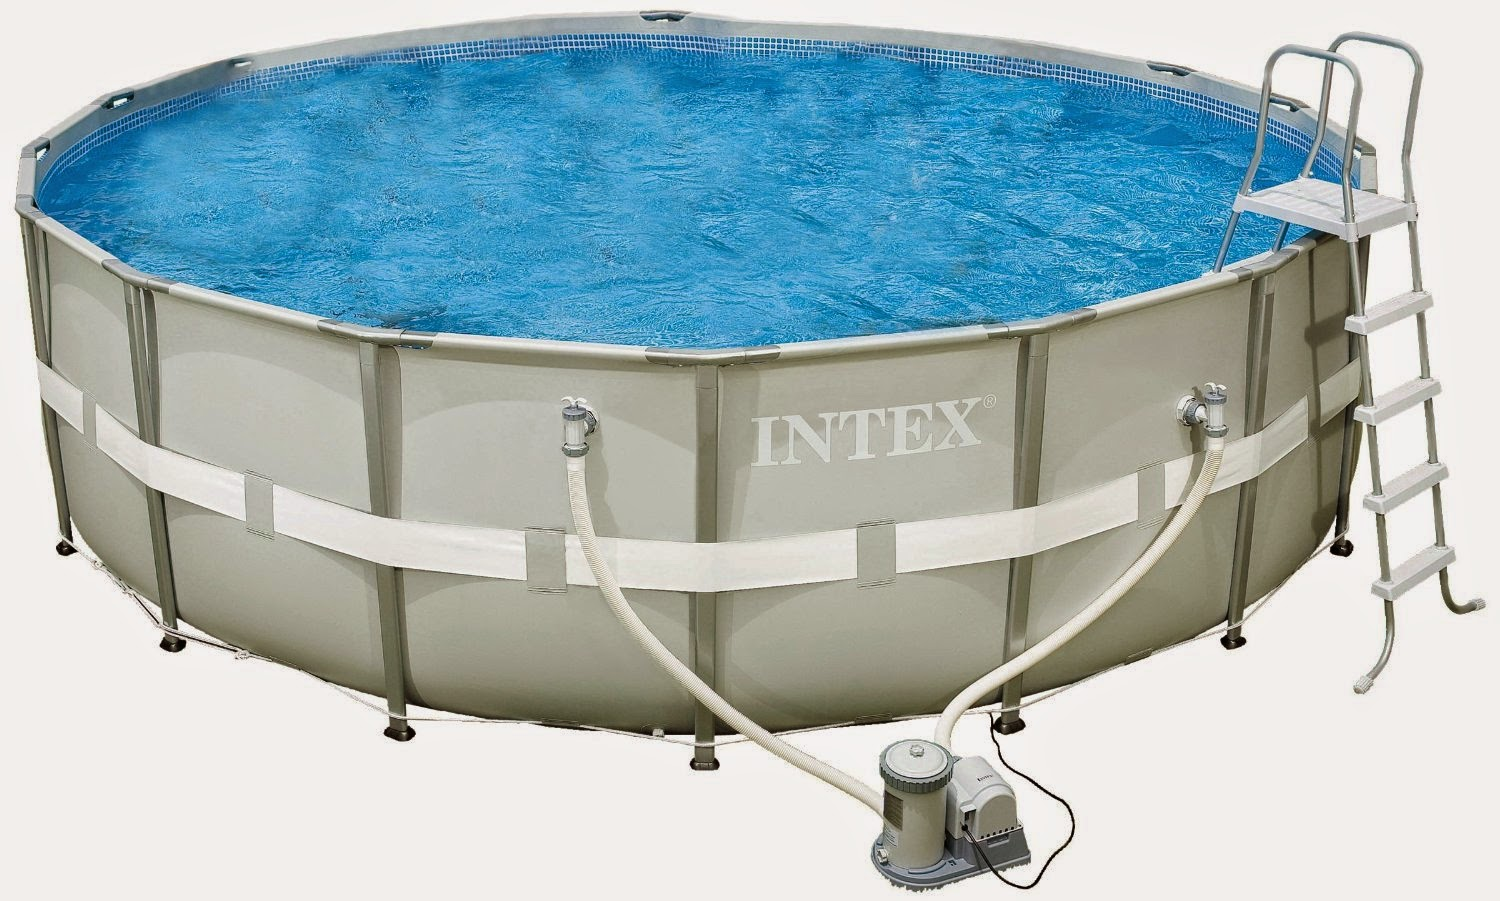 Best Seller Intex Pools Reviews Intex Pools 18 X 52